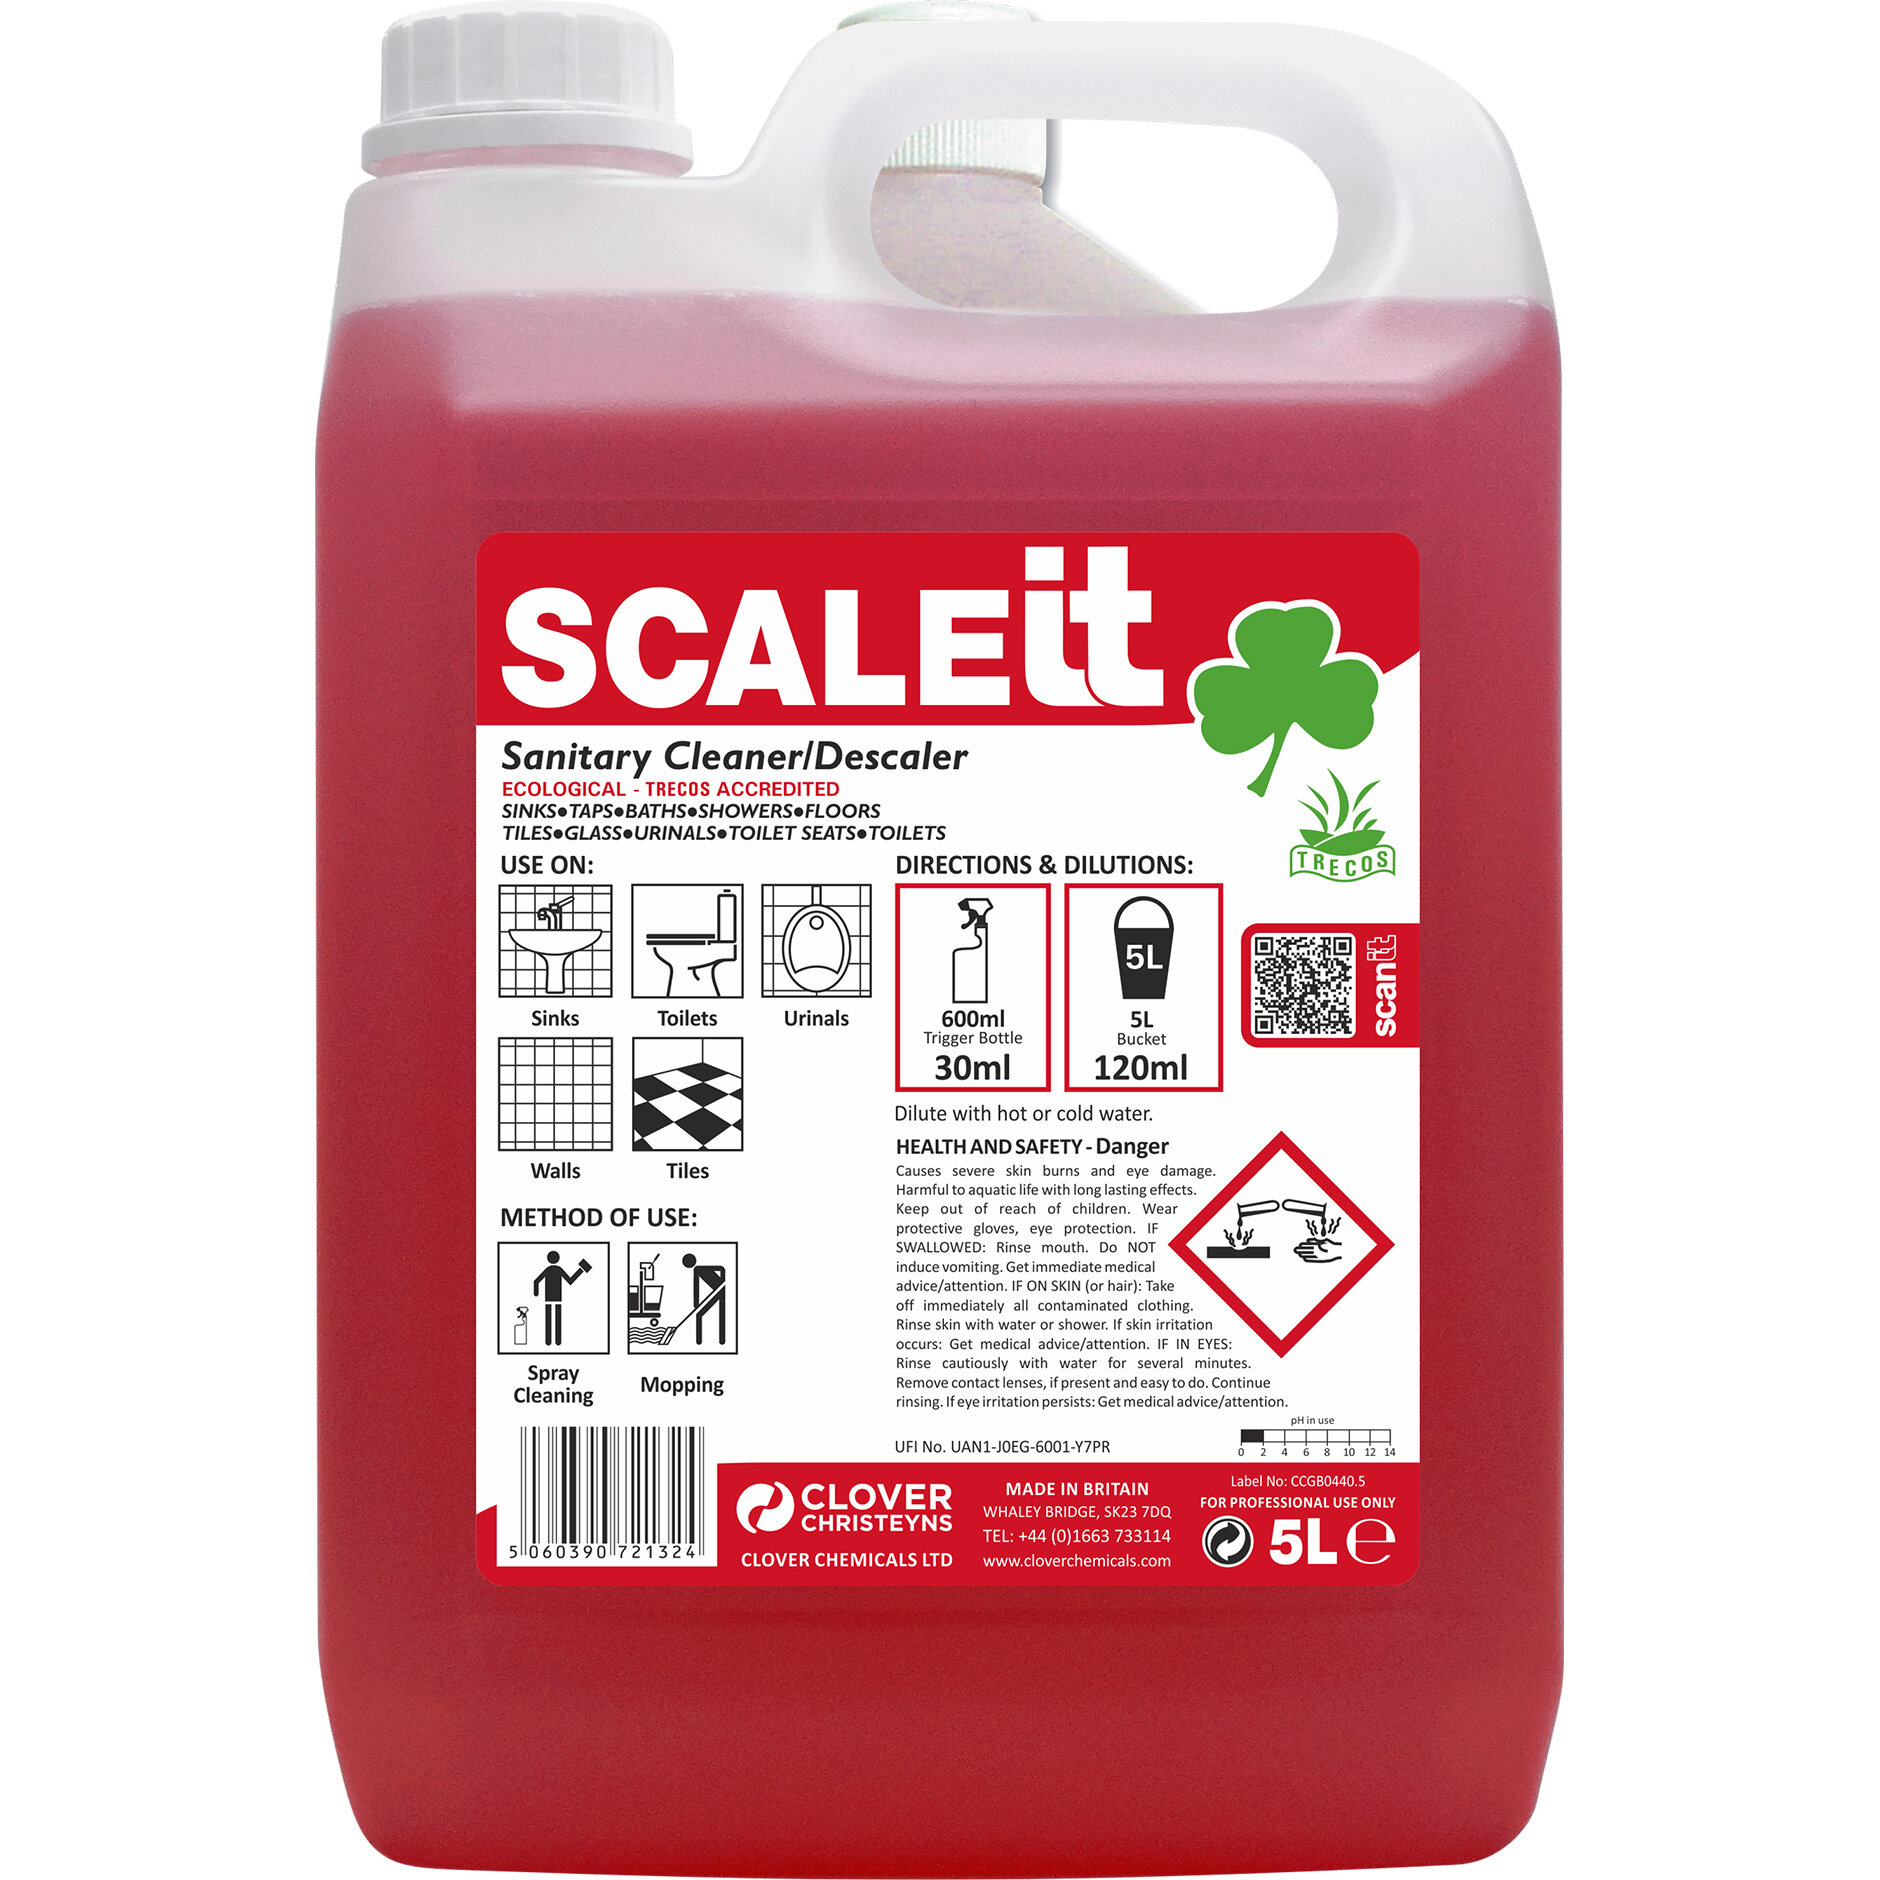 5L SCALEIT TOILET CLEANER